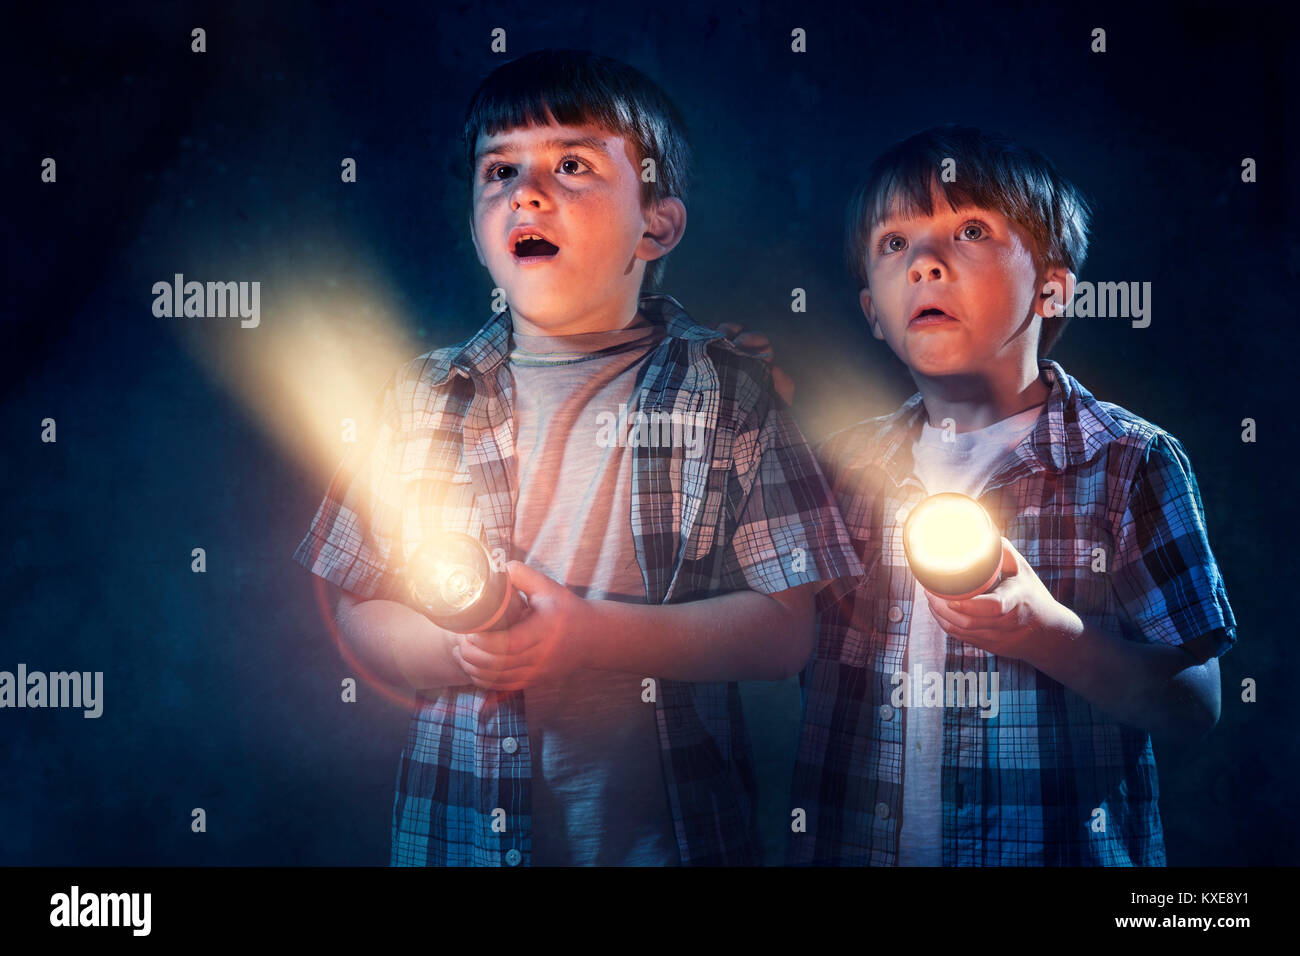 Young boys scared in dark with flashlight - Stock Image